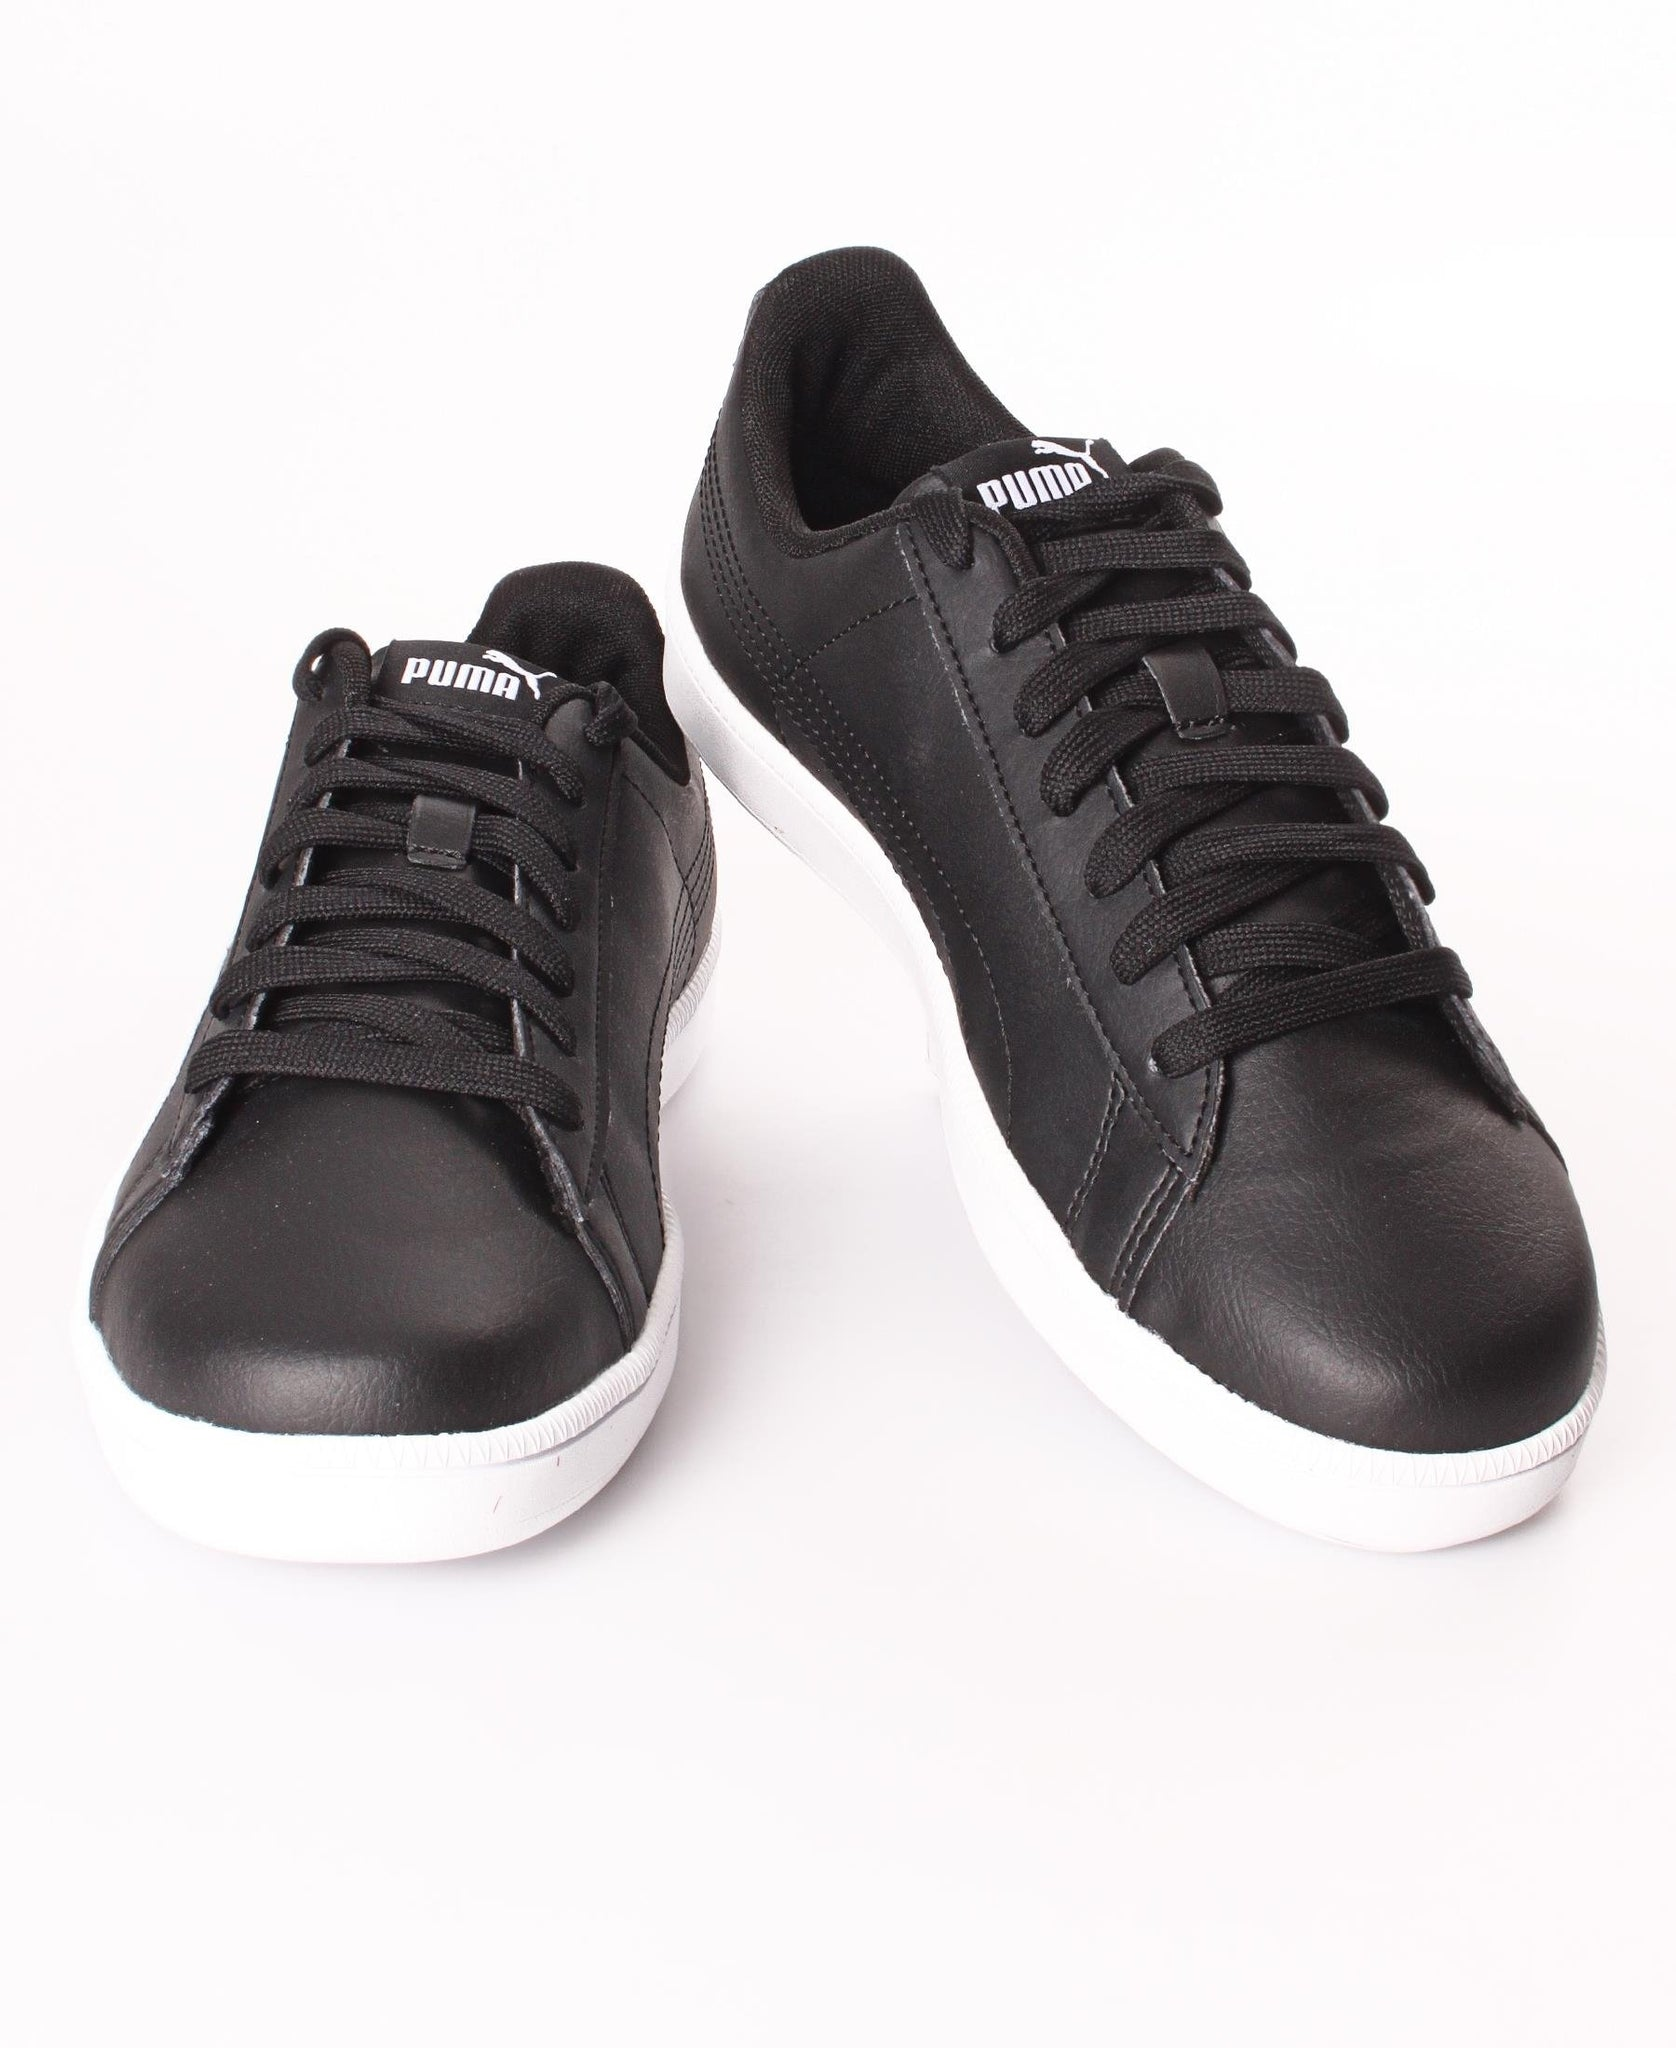 Men's Puma UP Sneakers - Black